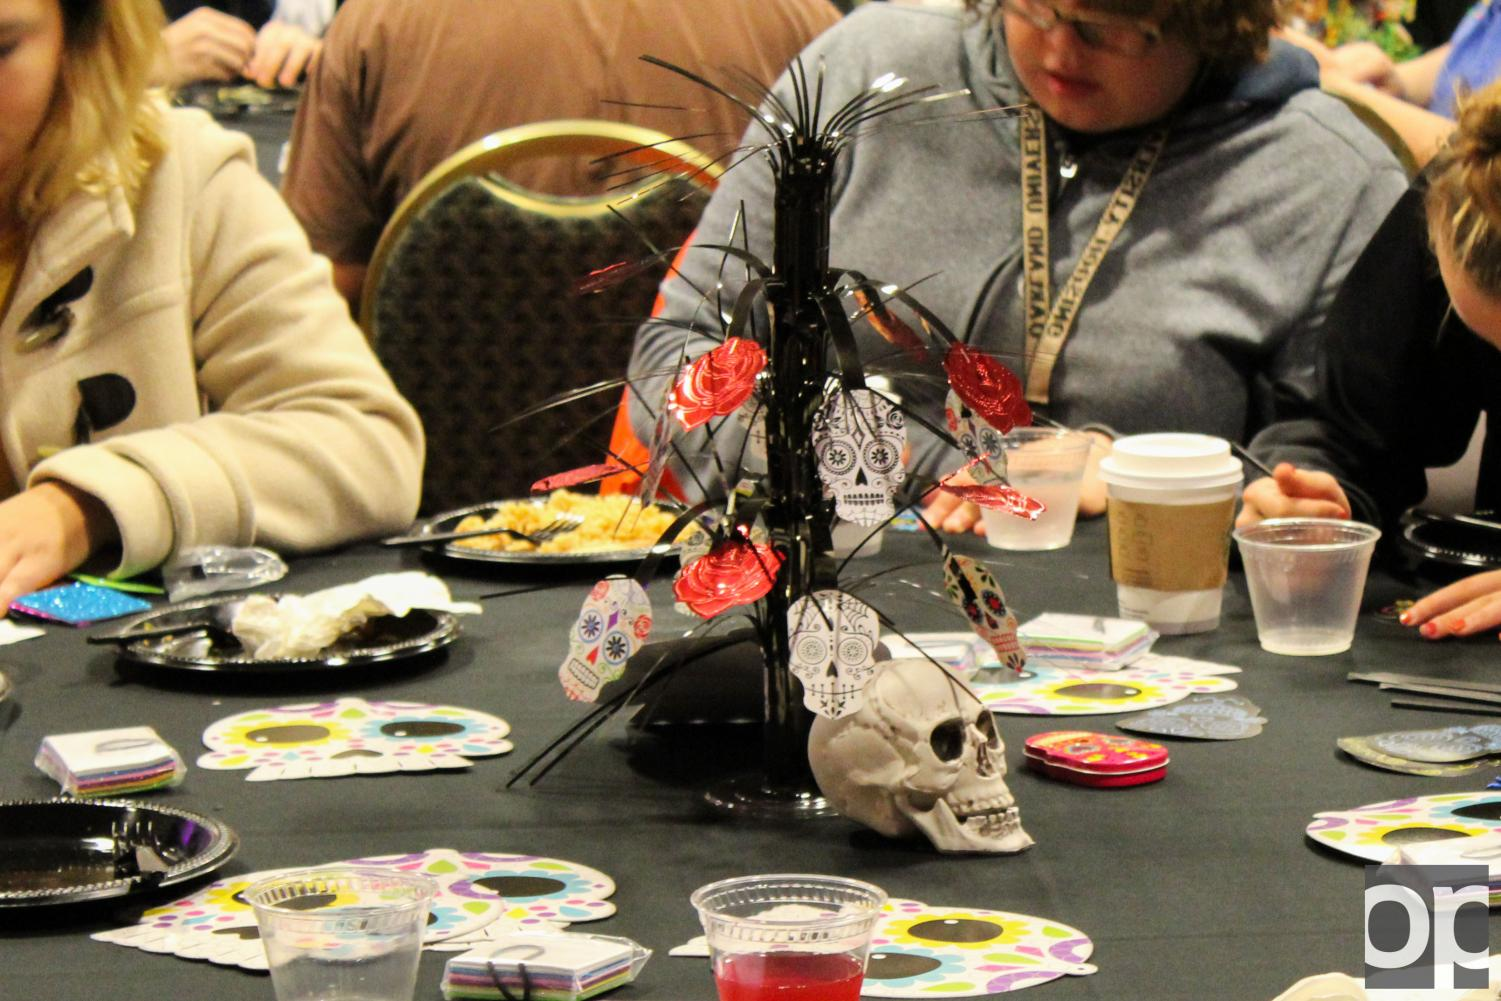 Sugarskulls decorated the tables as students celebrated Day of the Dead.